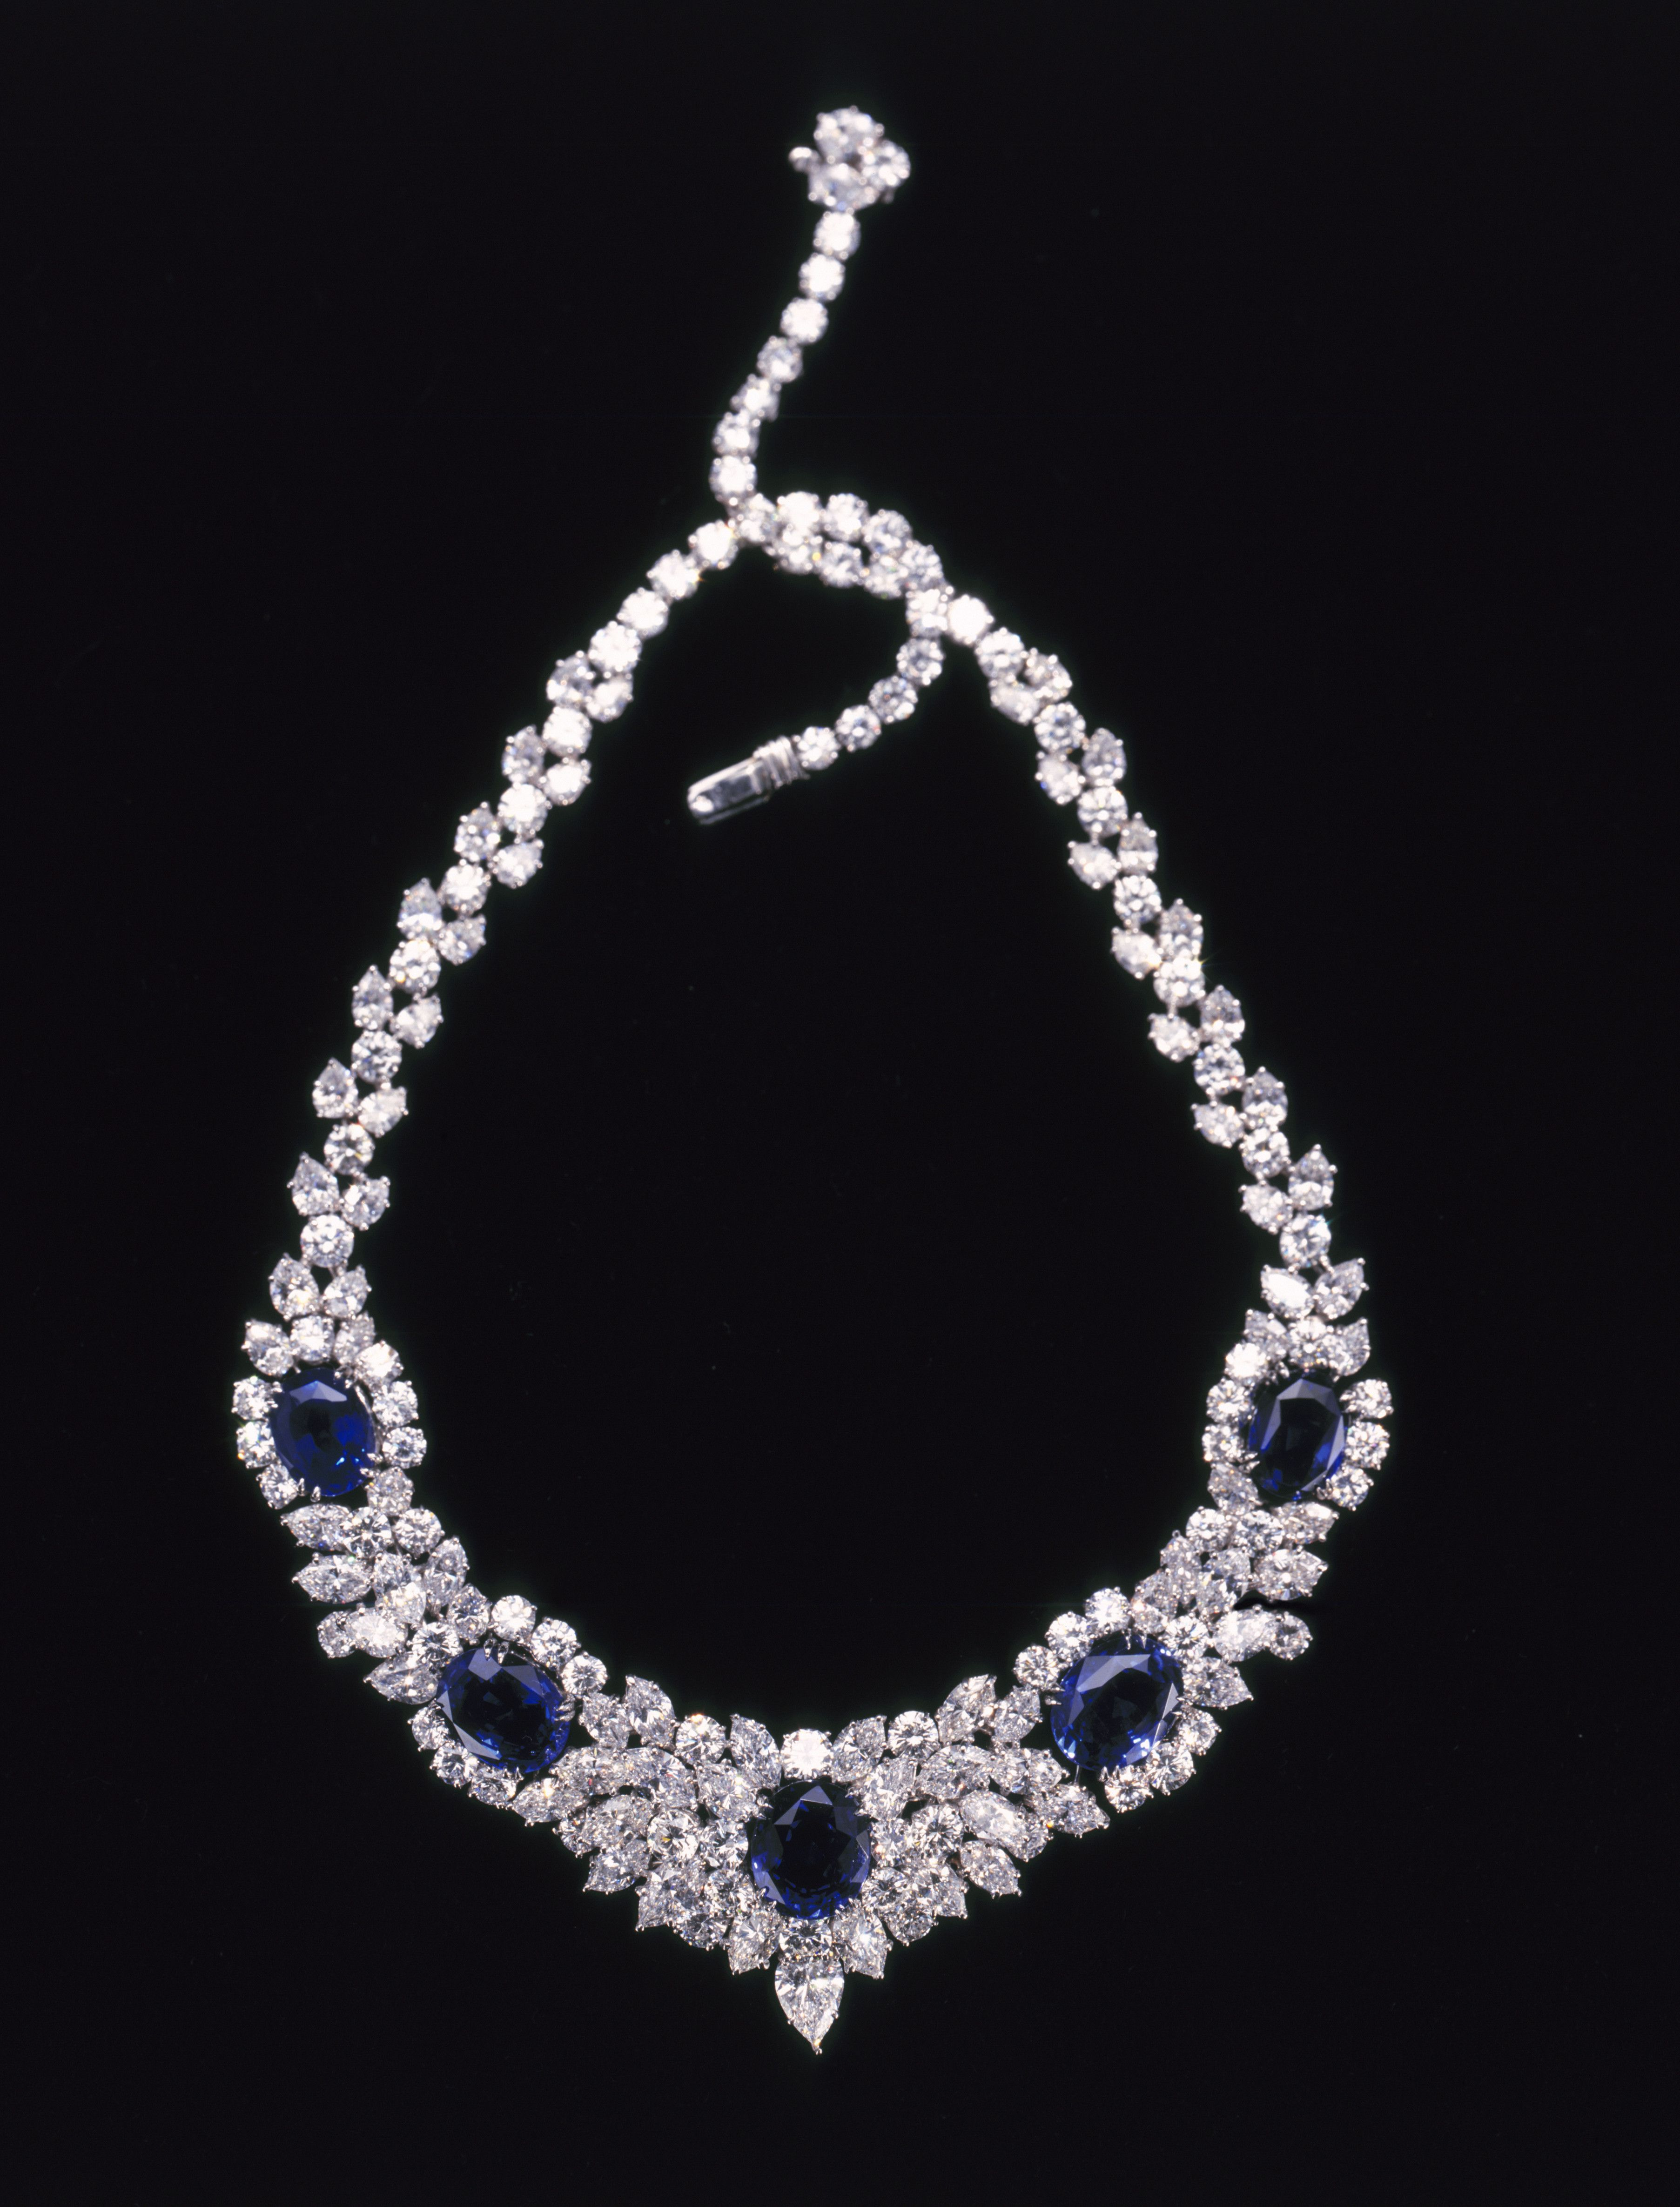 Types of Necklaces Glossary of Necklace Styles